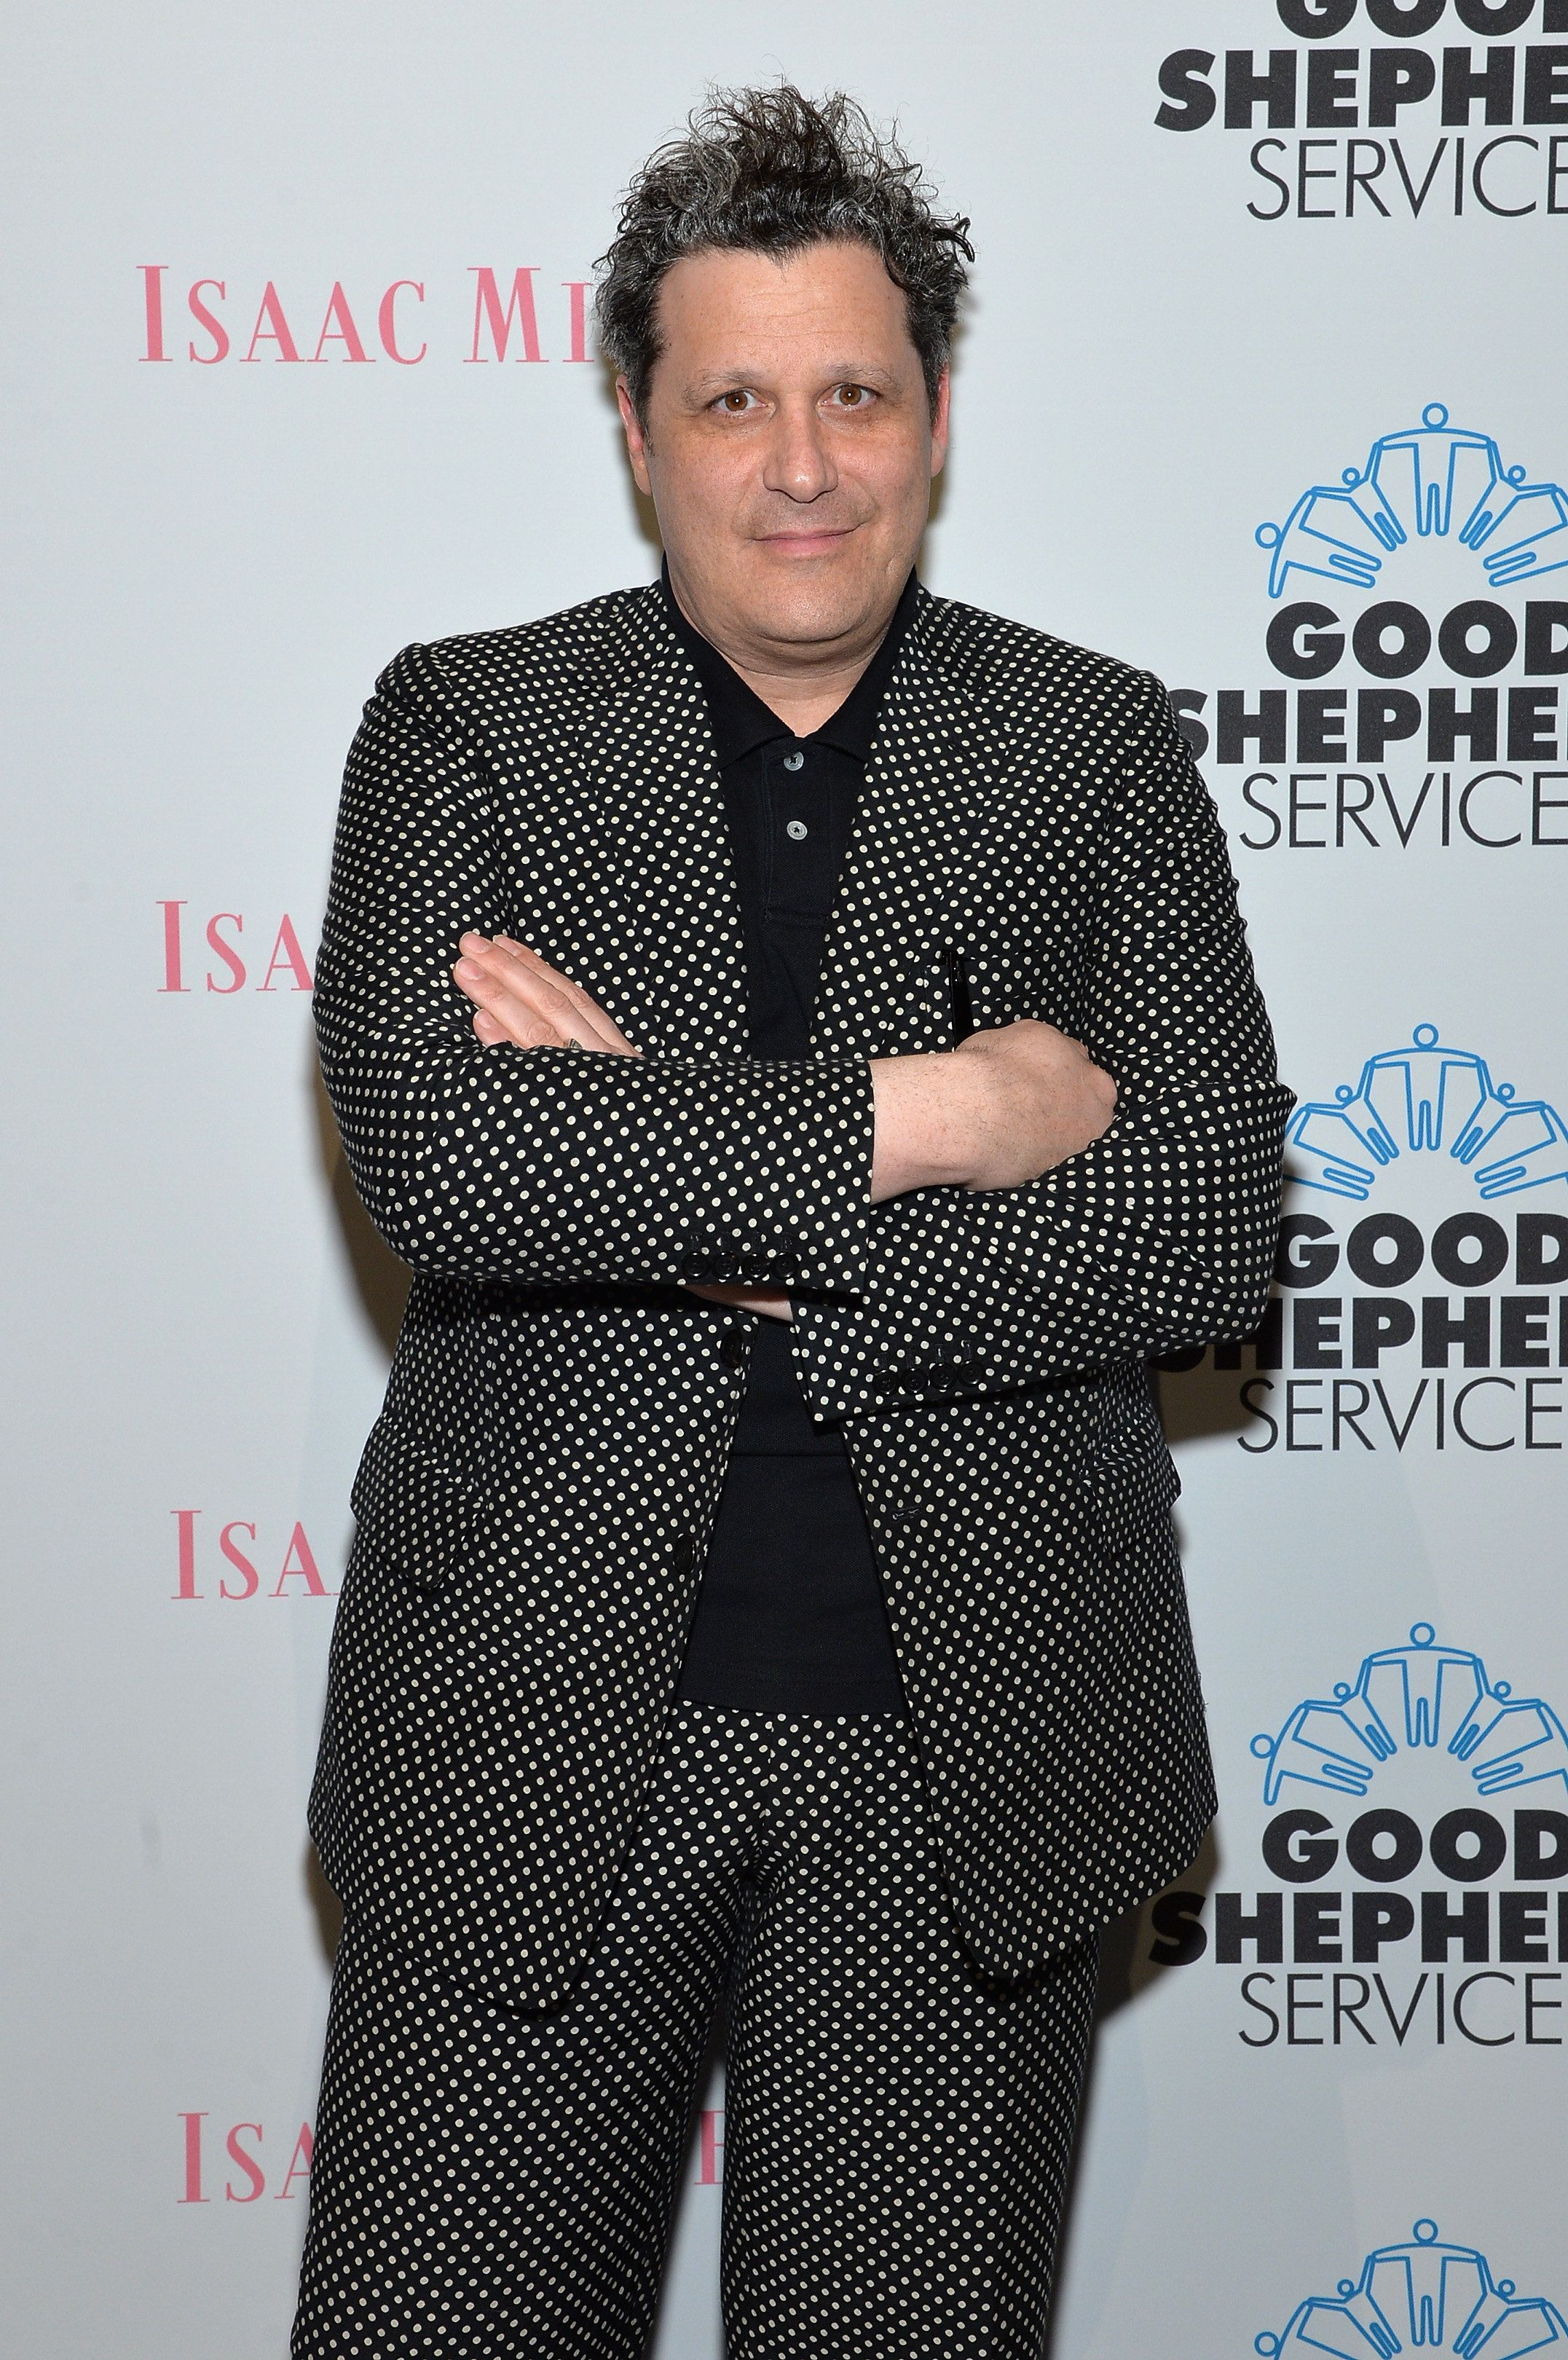 NEW YORK, NY - APRIL 24:  Designer Isaac Mizrahi attends the Good Shepherd Services Spring Party hosted by Isaac Mizrahi at Stage 37 on April 24, 2014 in New York City.  (Photo by Mike Coppola/Getty Images for Good Shepherd Services)